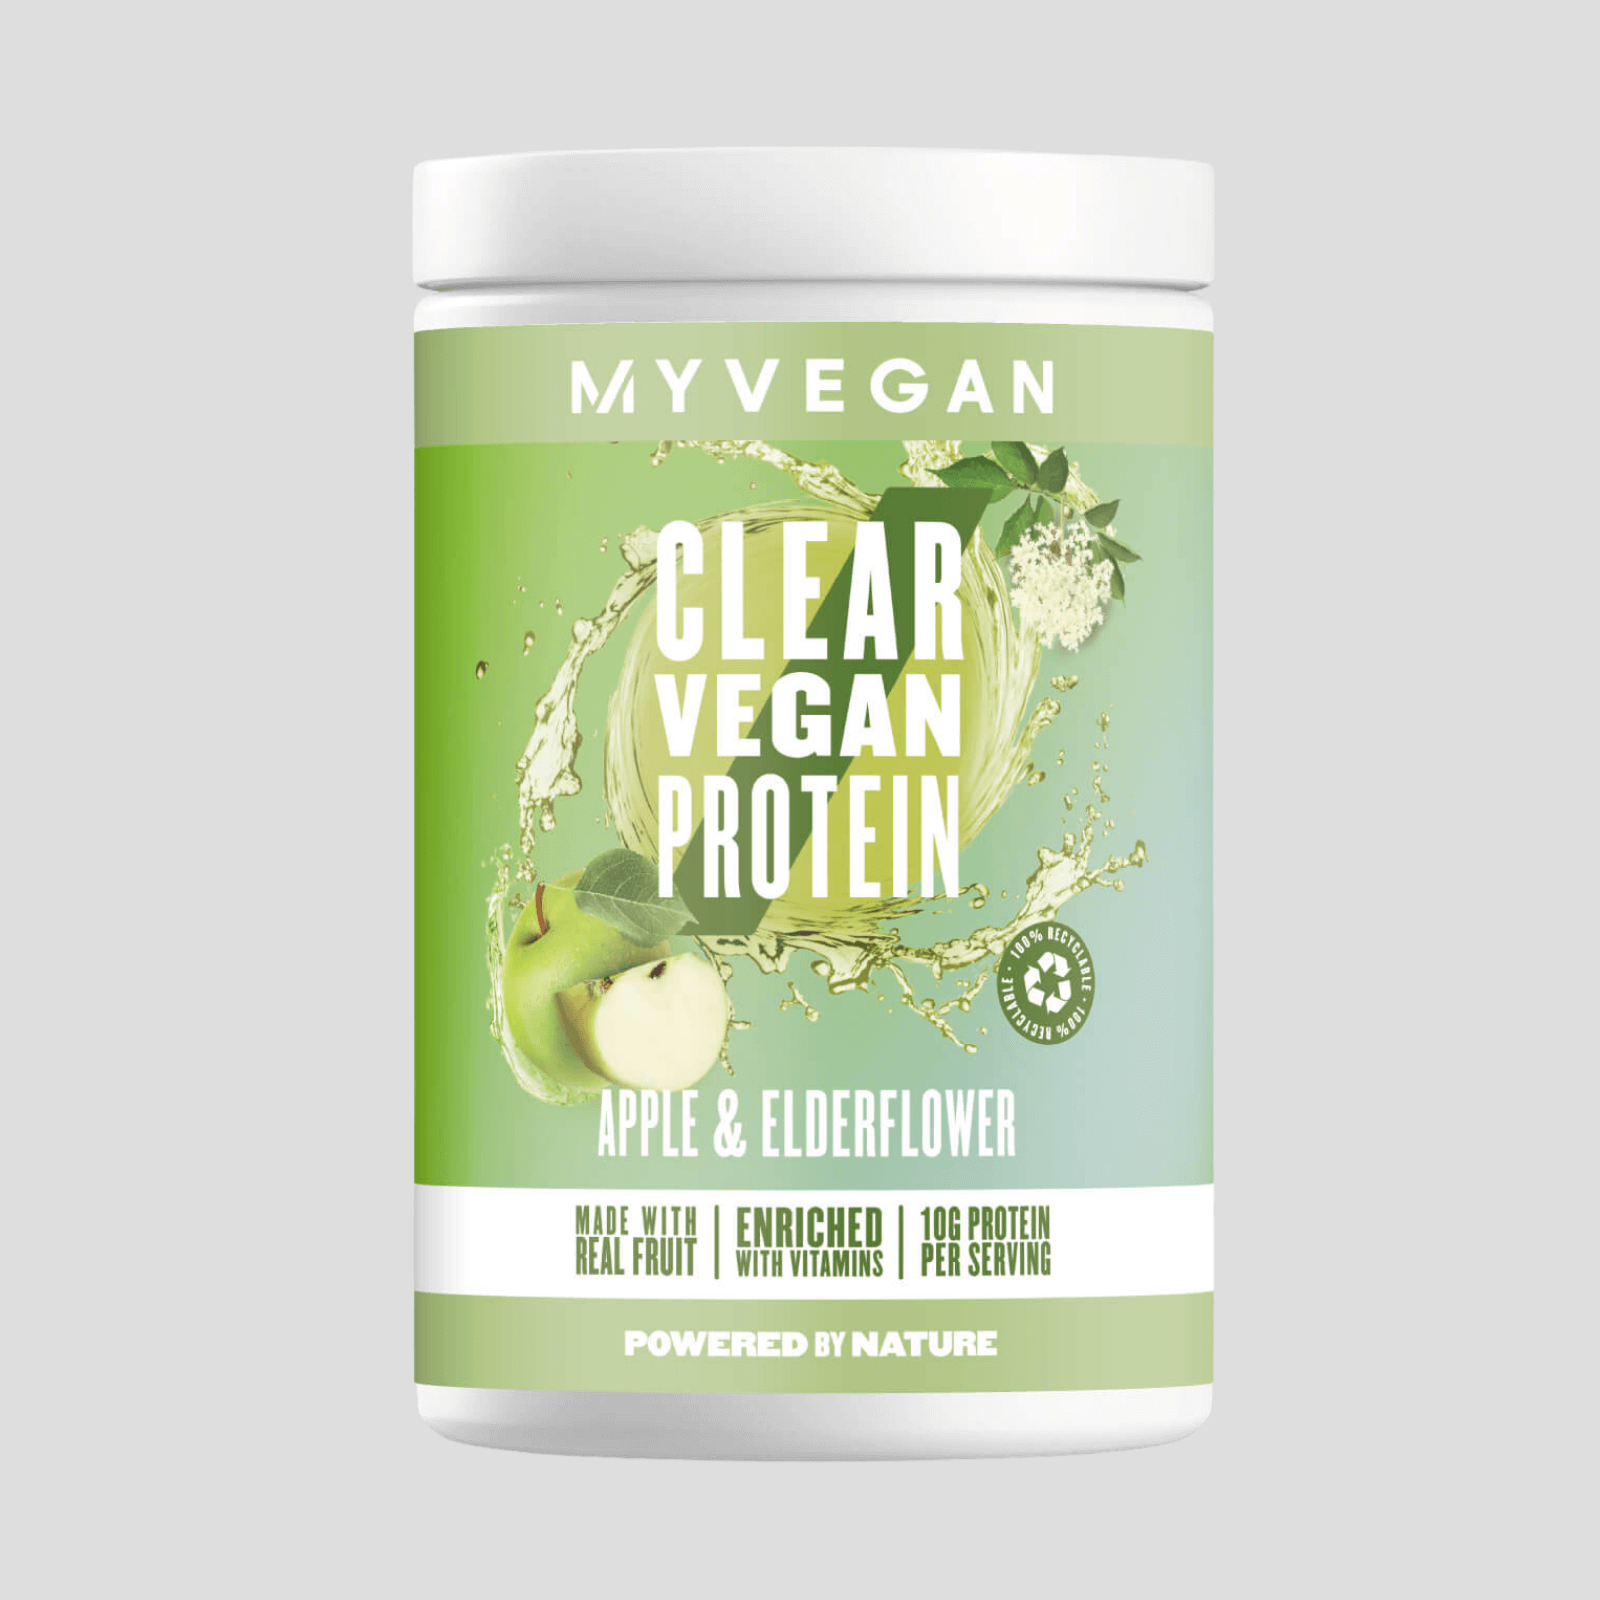 Clear Vegan Protein - 20servings - Apple & Elderflower